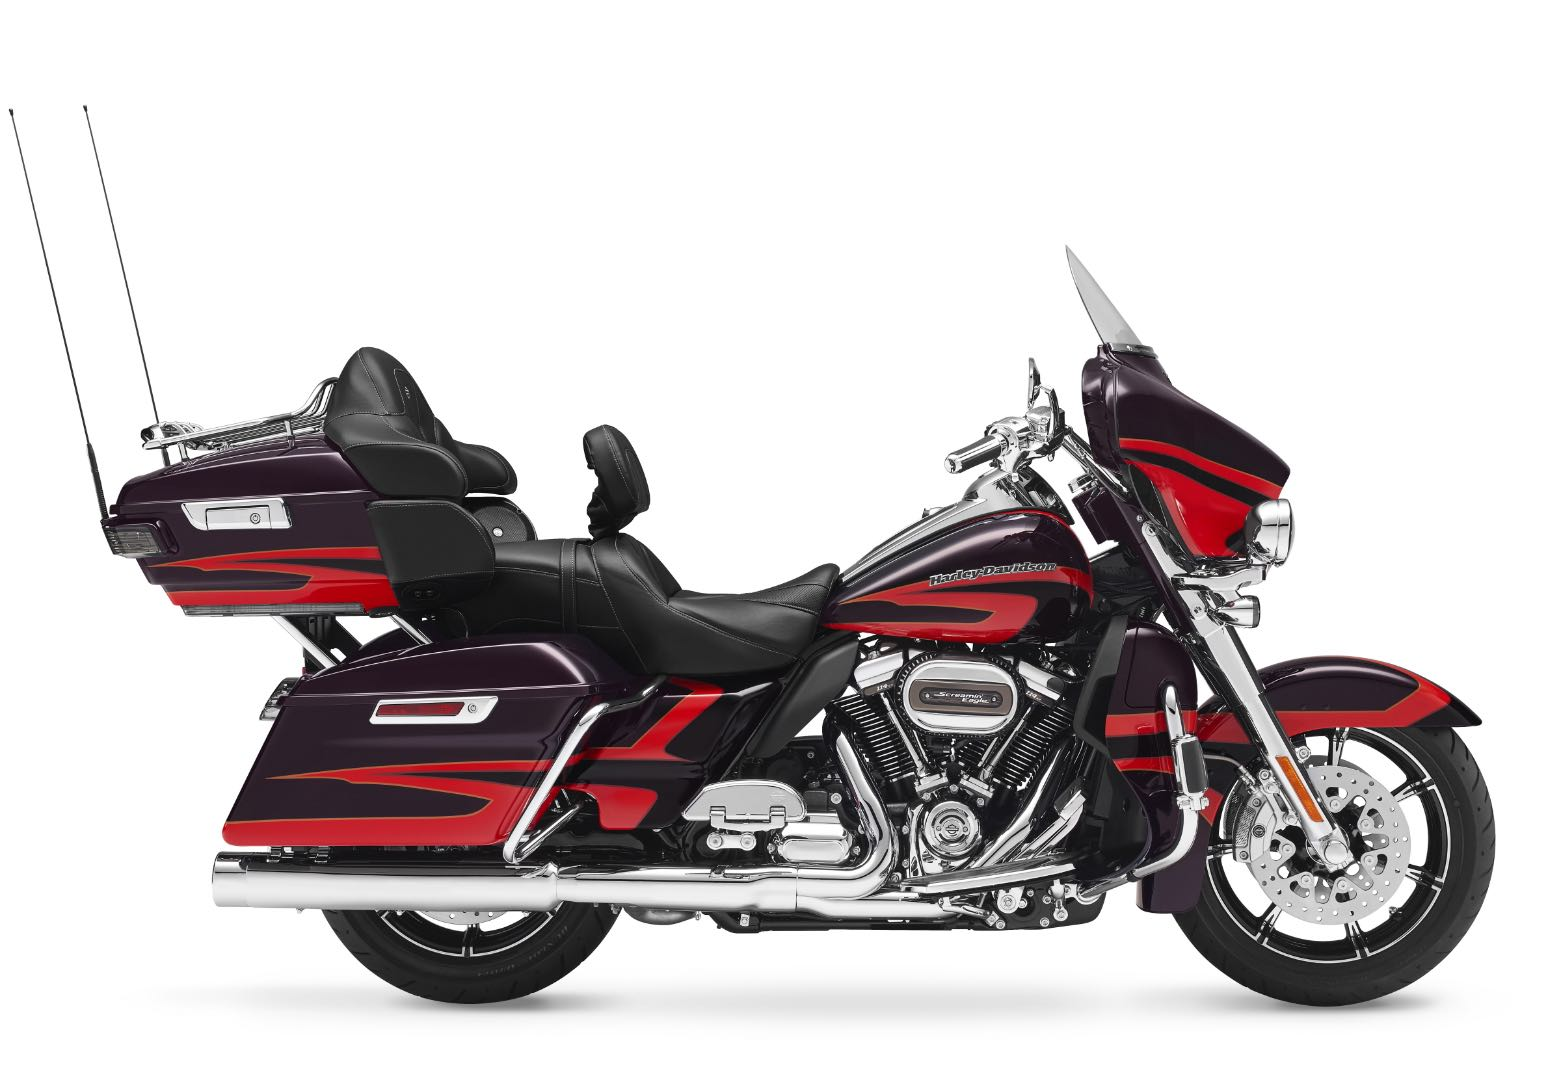 2017 Harley-Davidson CVO Limited red/black